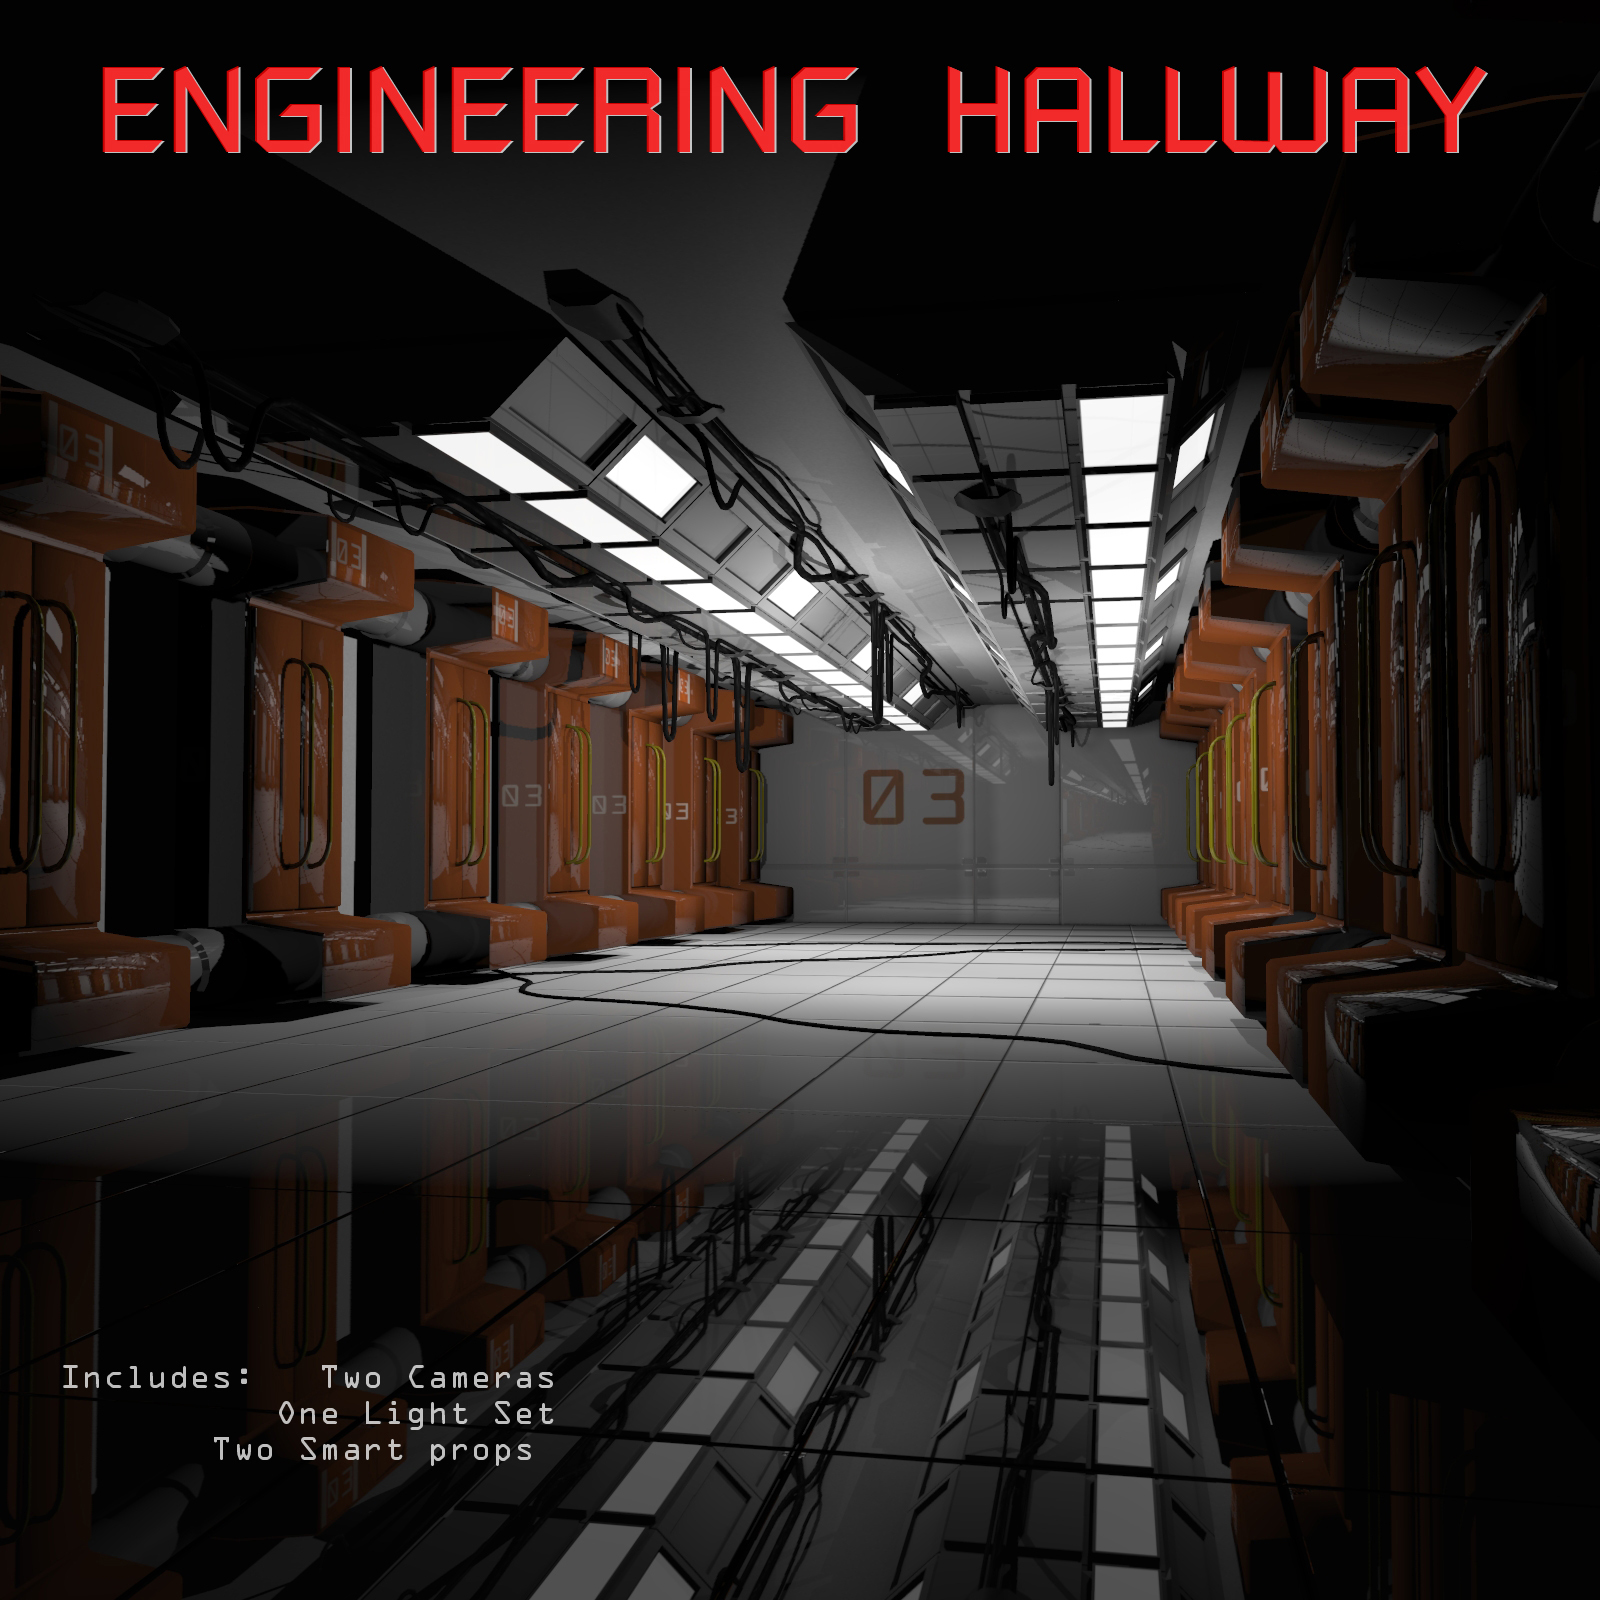 Engineering Hallway by shawnaloroc